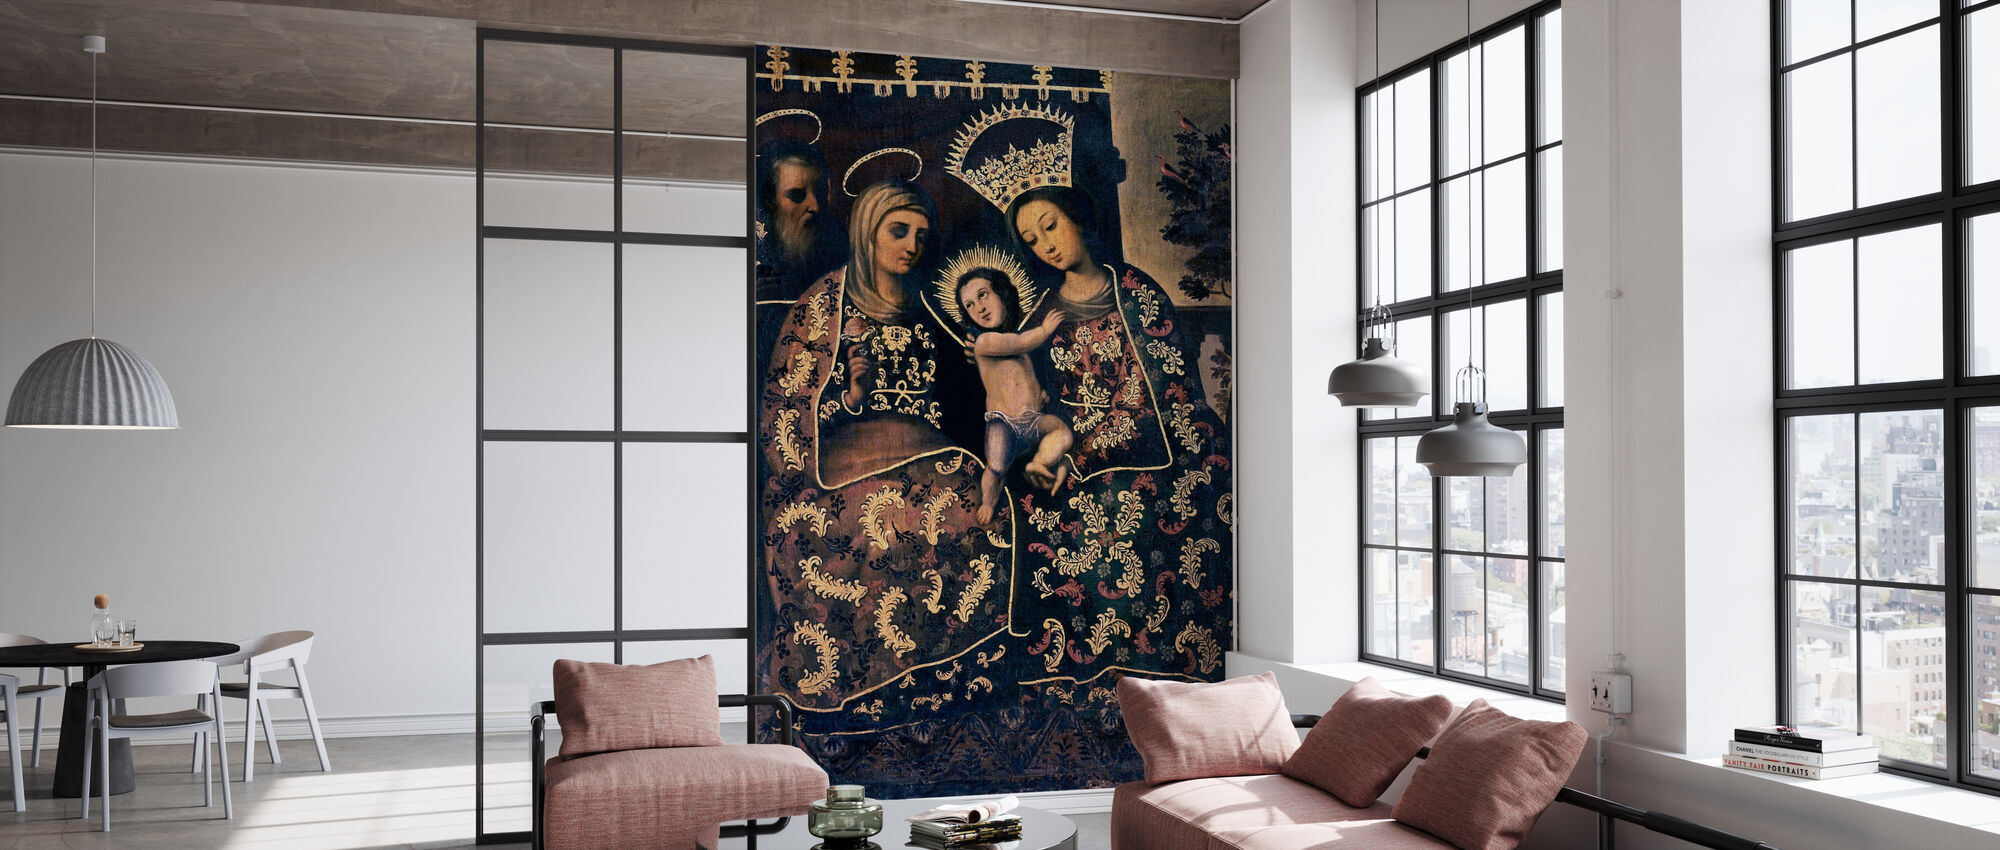 Virgin Mary Painting - Wallpaper - Office